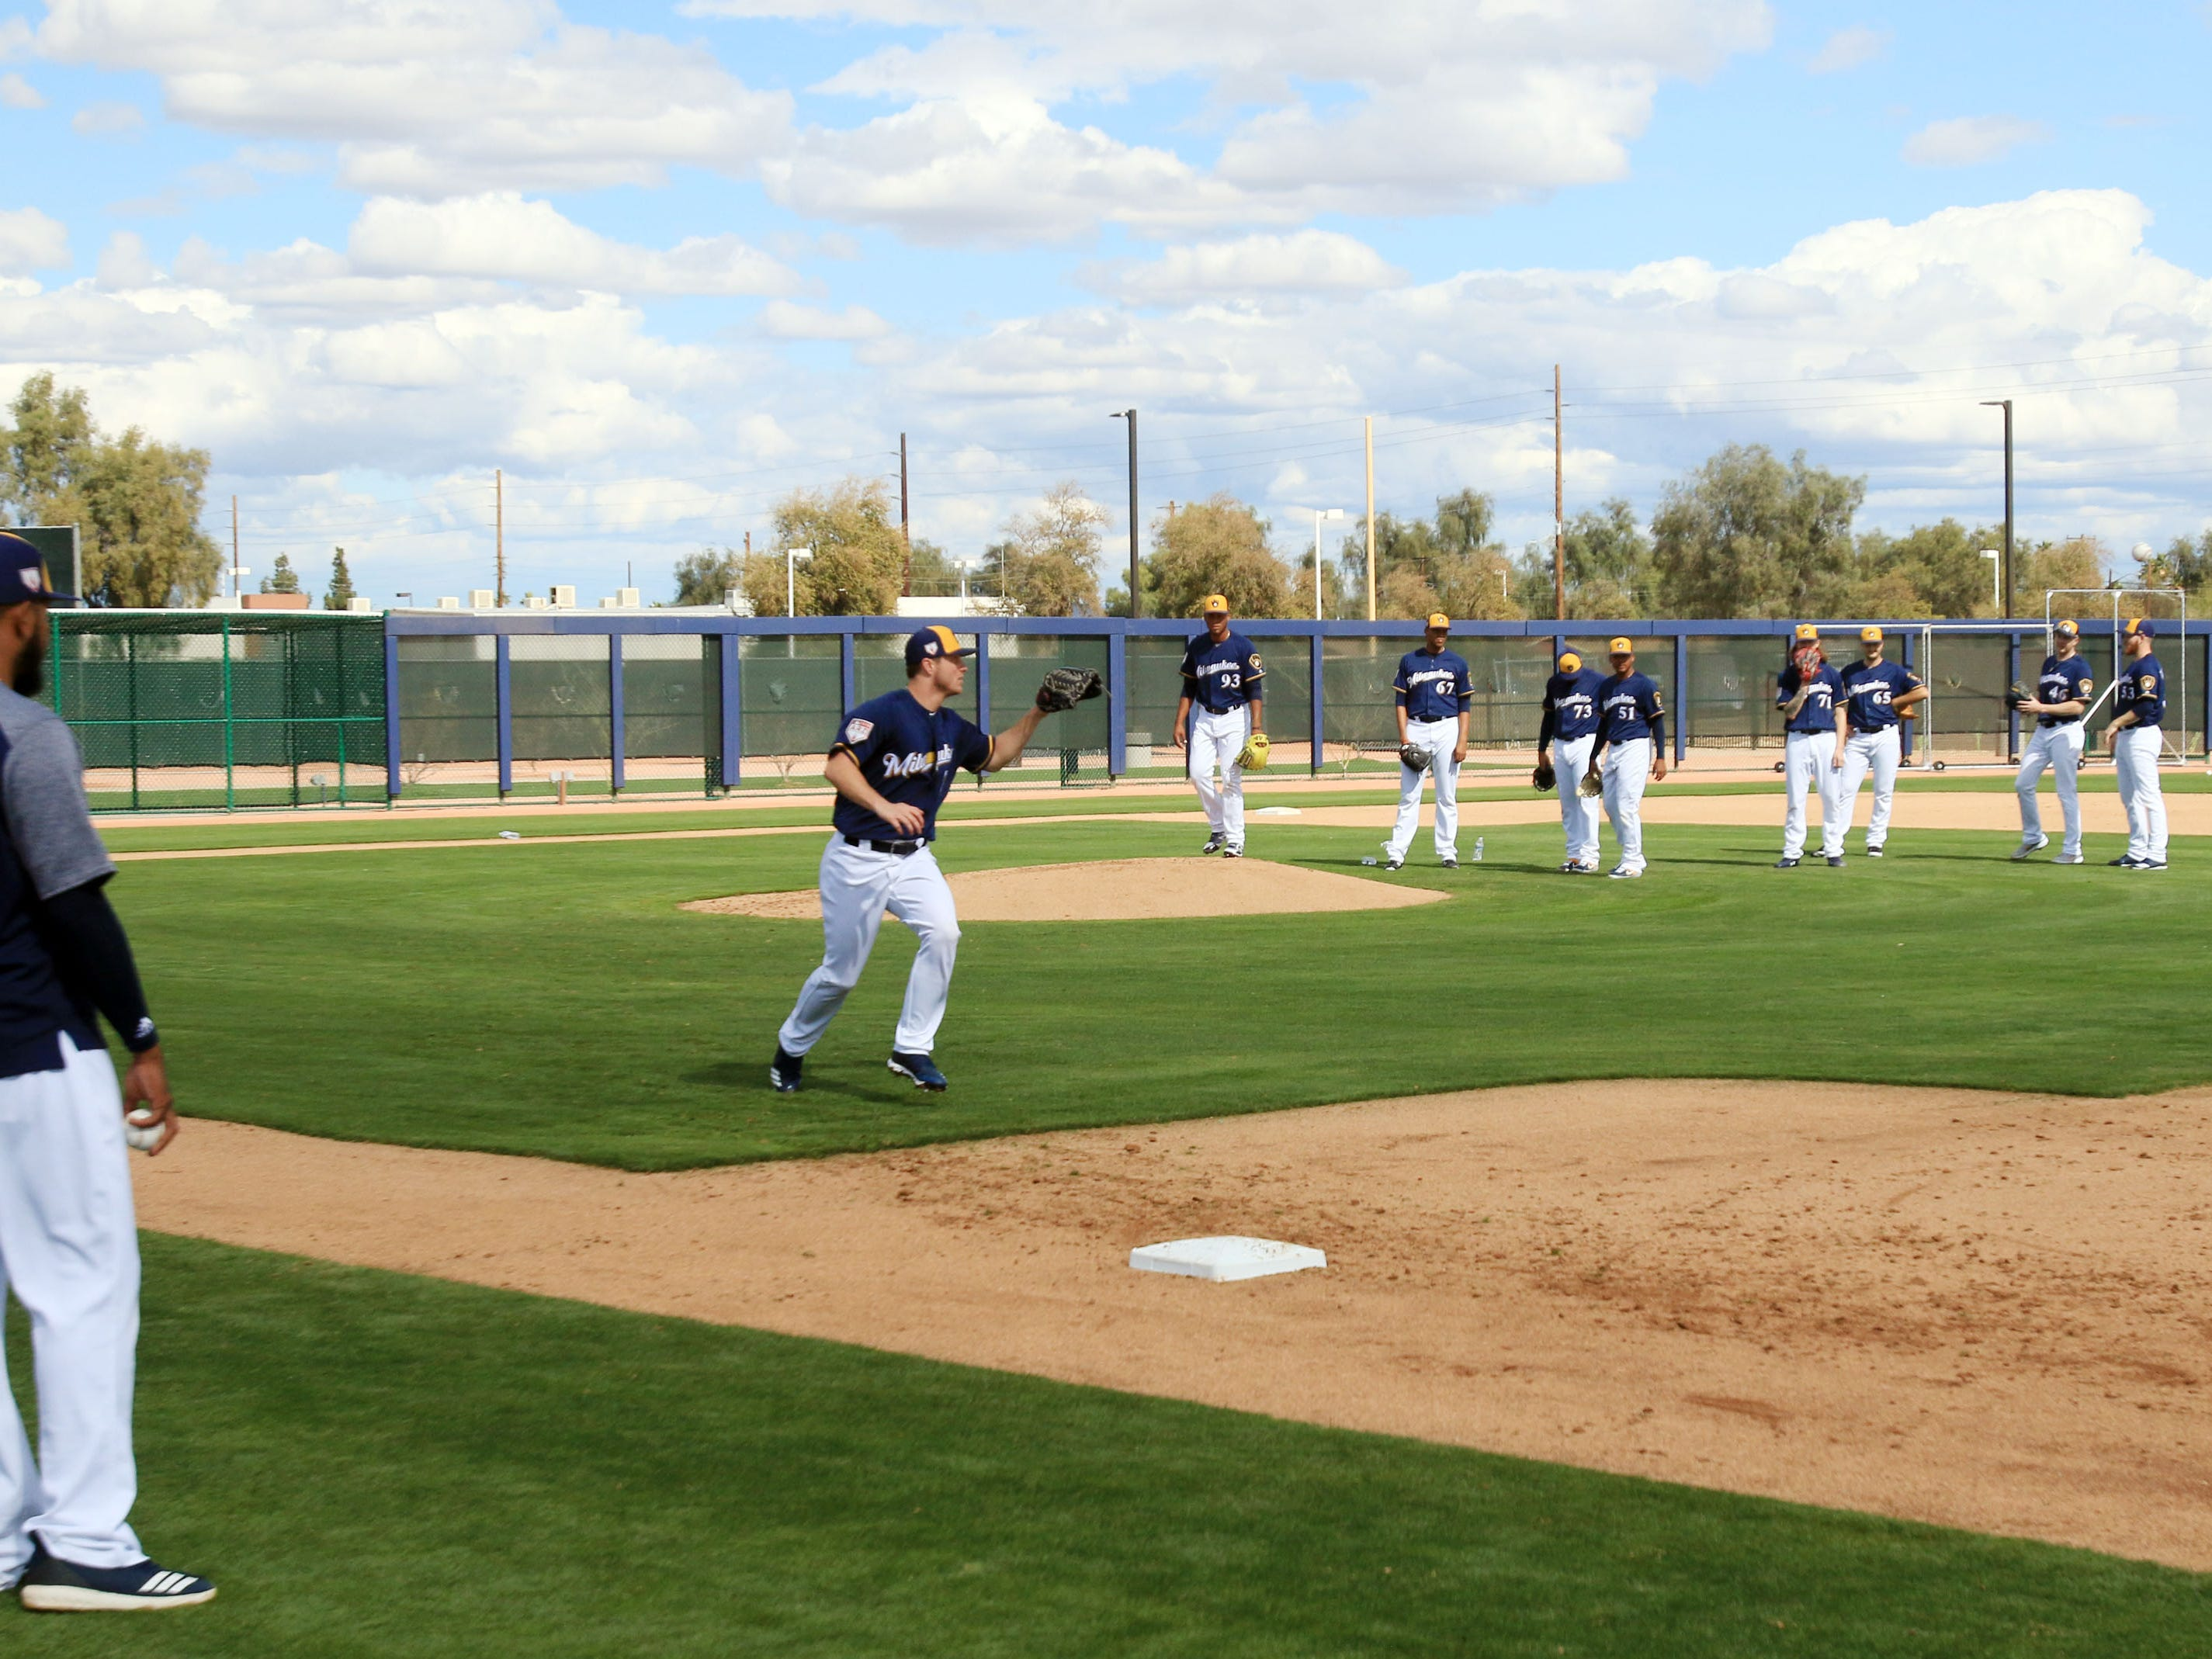 Brewers pitchers work on covering first base during drills on Saturday.